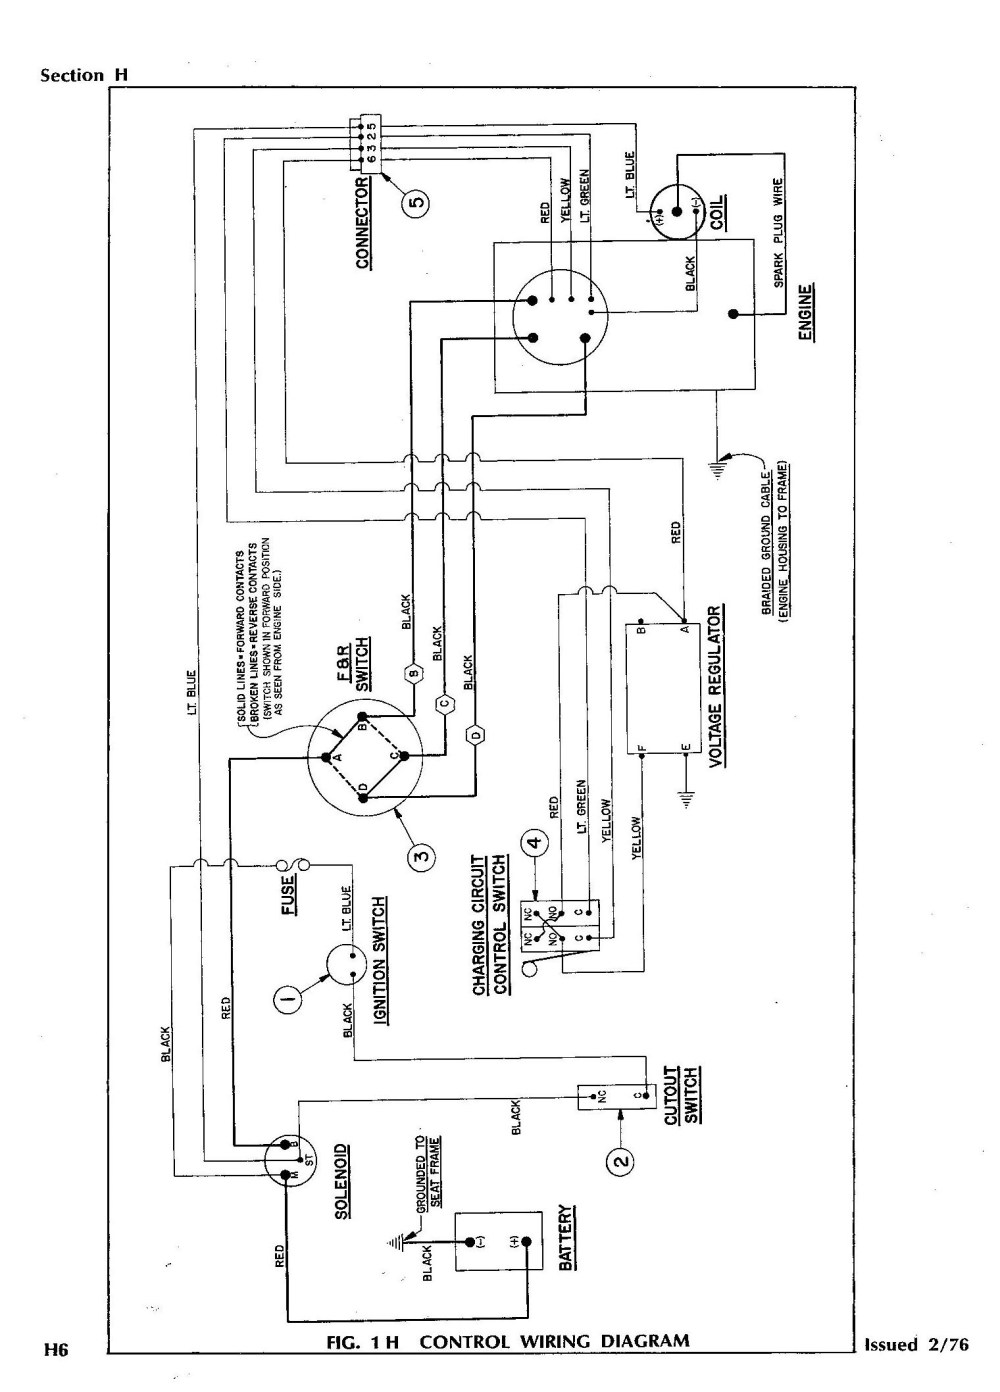 medium resolution of ez wire diagram for 1969 chevelle simple wiring schema easy go golf cart wiring ez wiring 20 diagram